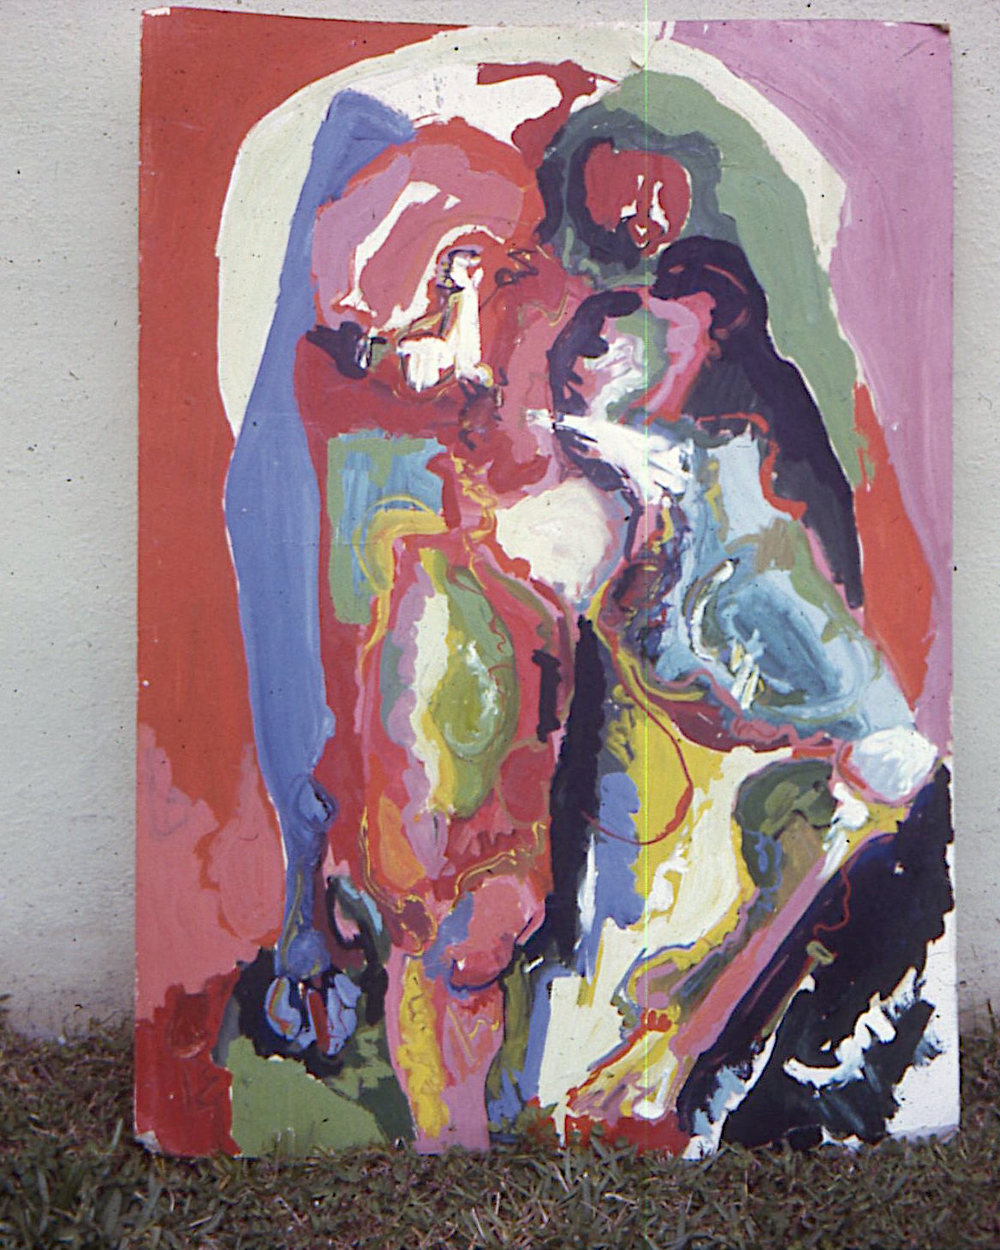 Bonnie Louie?, 1971. oil on canvas